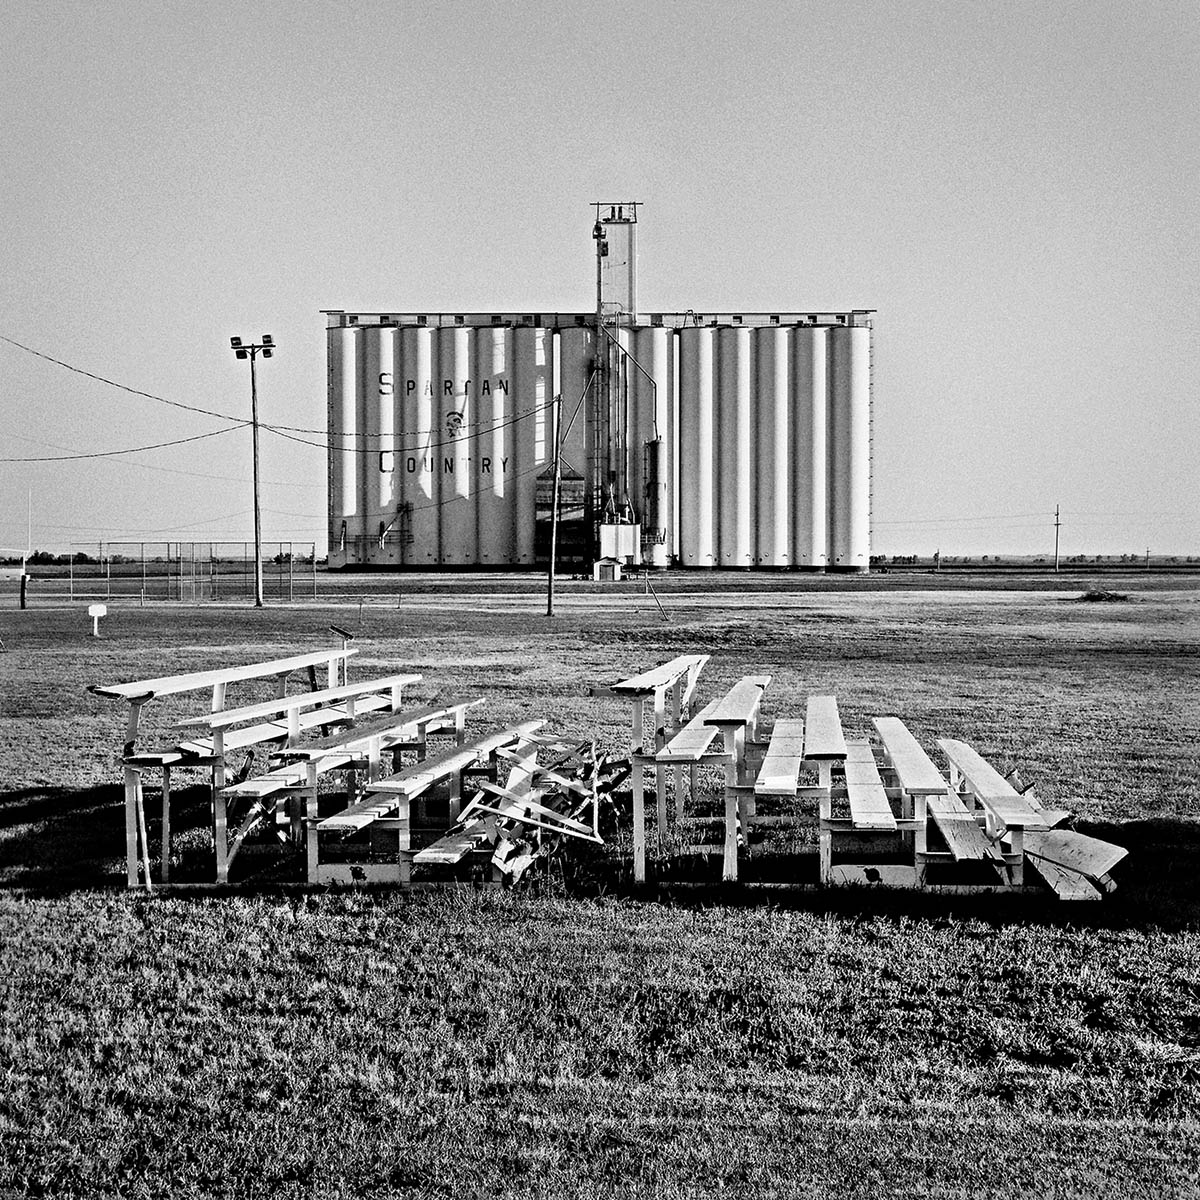 Spartan Grain Elevators, Nebraska, 1998